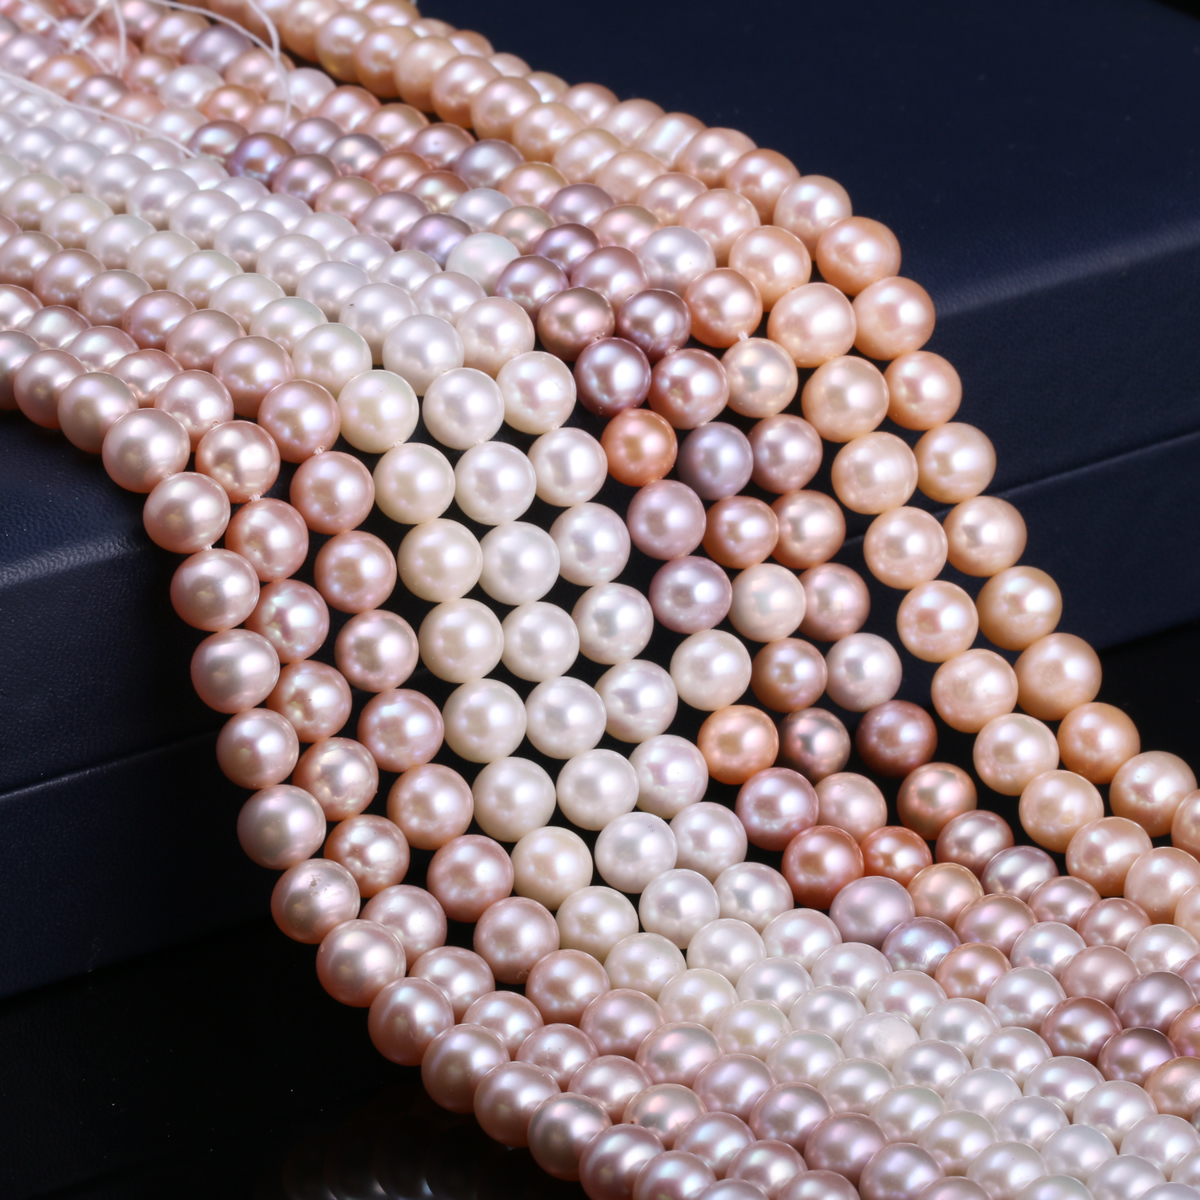 Natural Freshwater Cultured Pearls Beads Round 100 Natural Pearls for Jewelry Making Necklace Bracelet 14 Inches